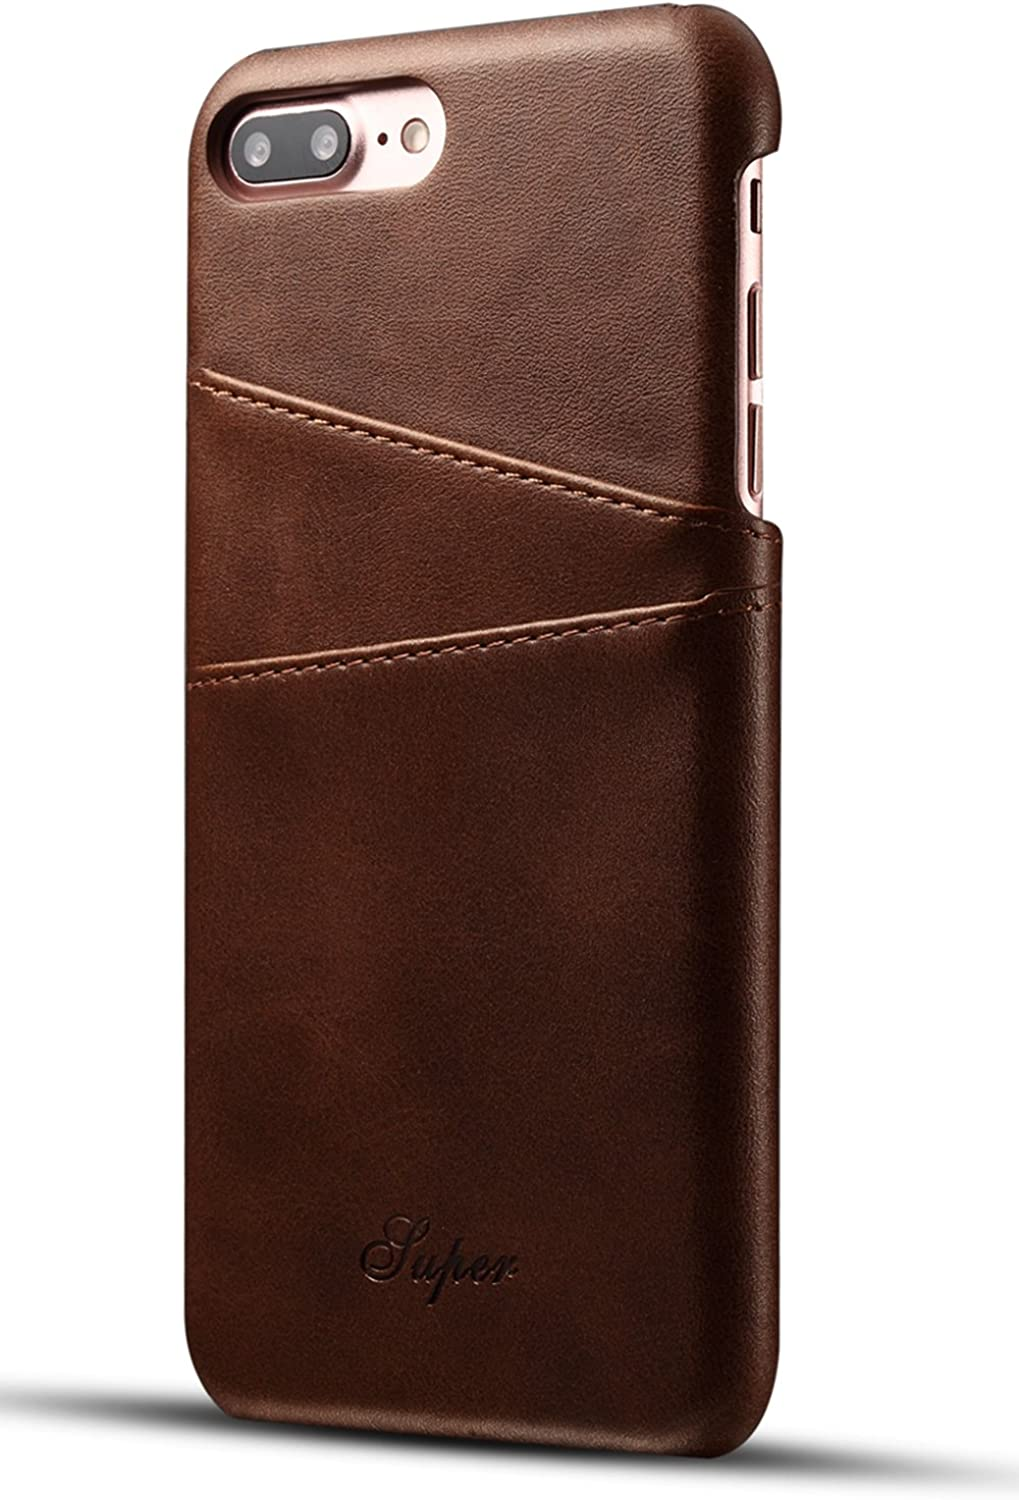 iPhone 8 Plus Wallet Phone Case, iPhone 7 Plus Case, XRPow Slim PU Leather Back Protective Case Cover With Credit Card Holder